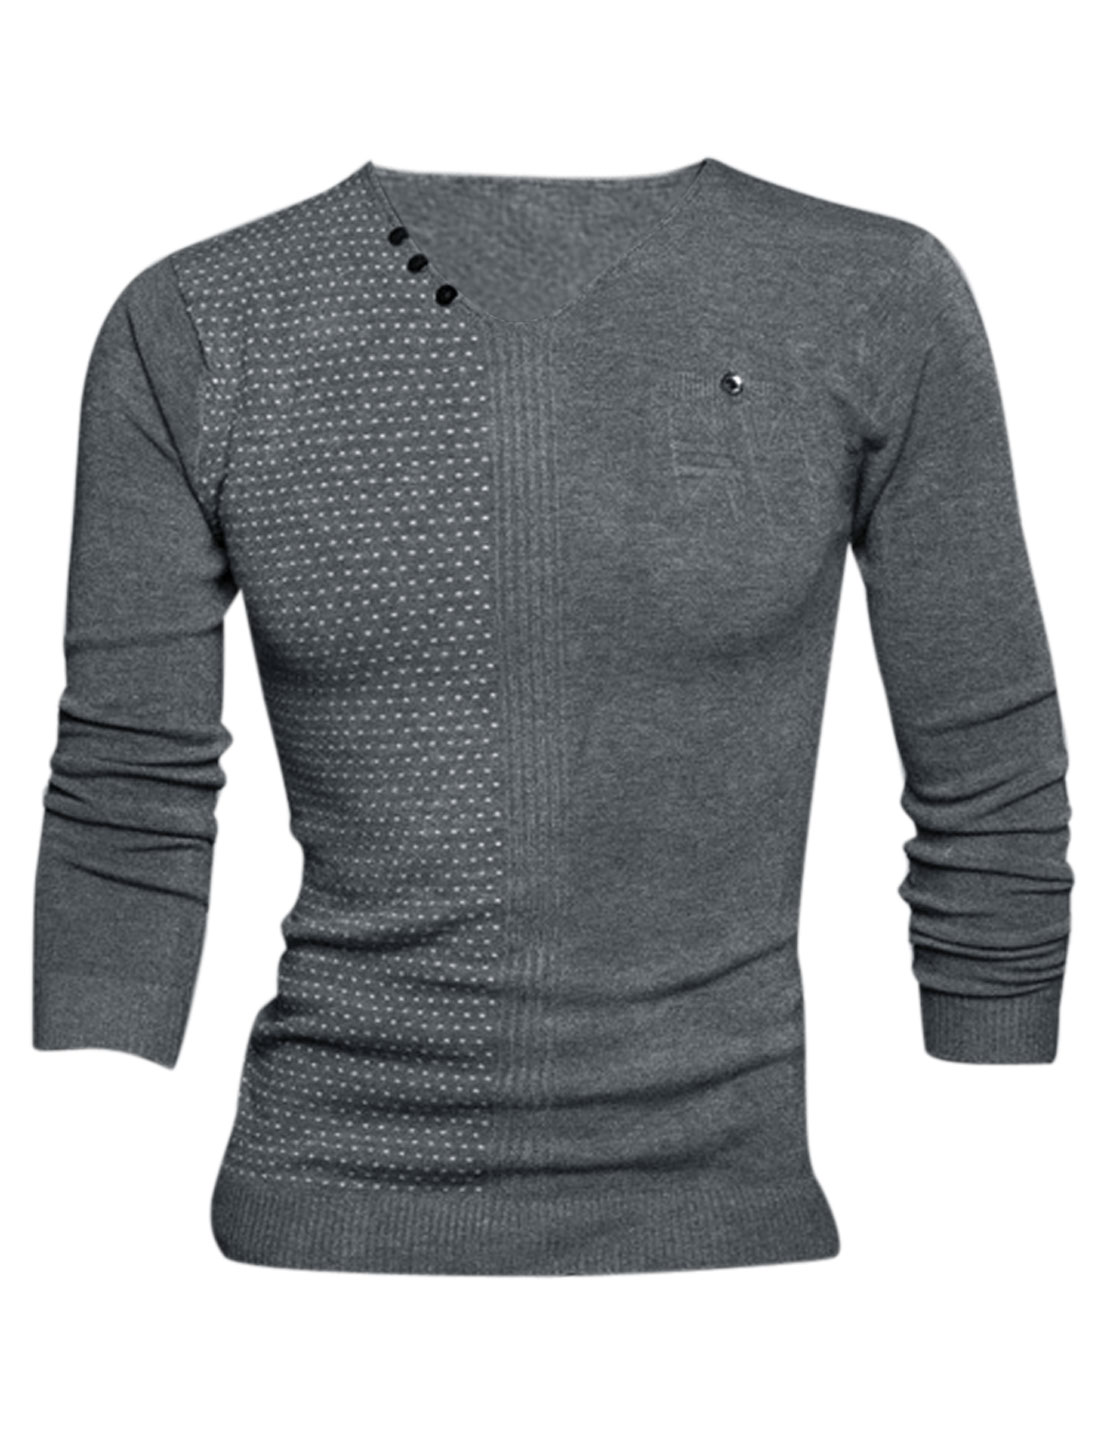 Men V Neck Novelty Prints Stitched Design Pullover Knit Shirt Dark Gray M